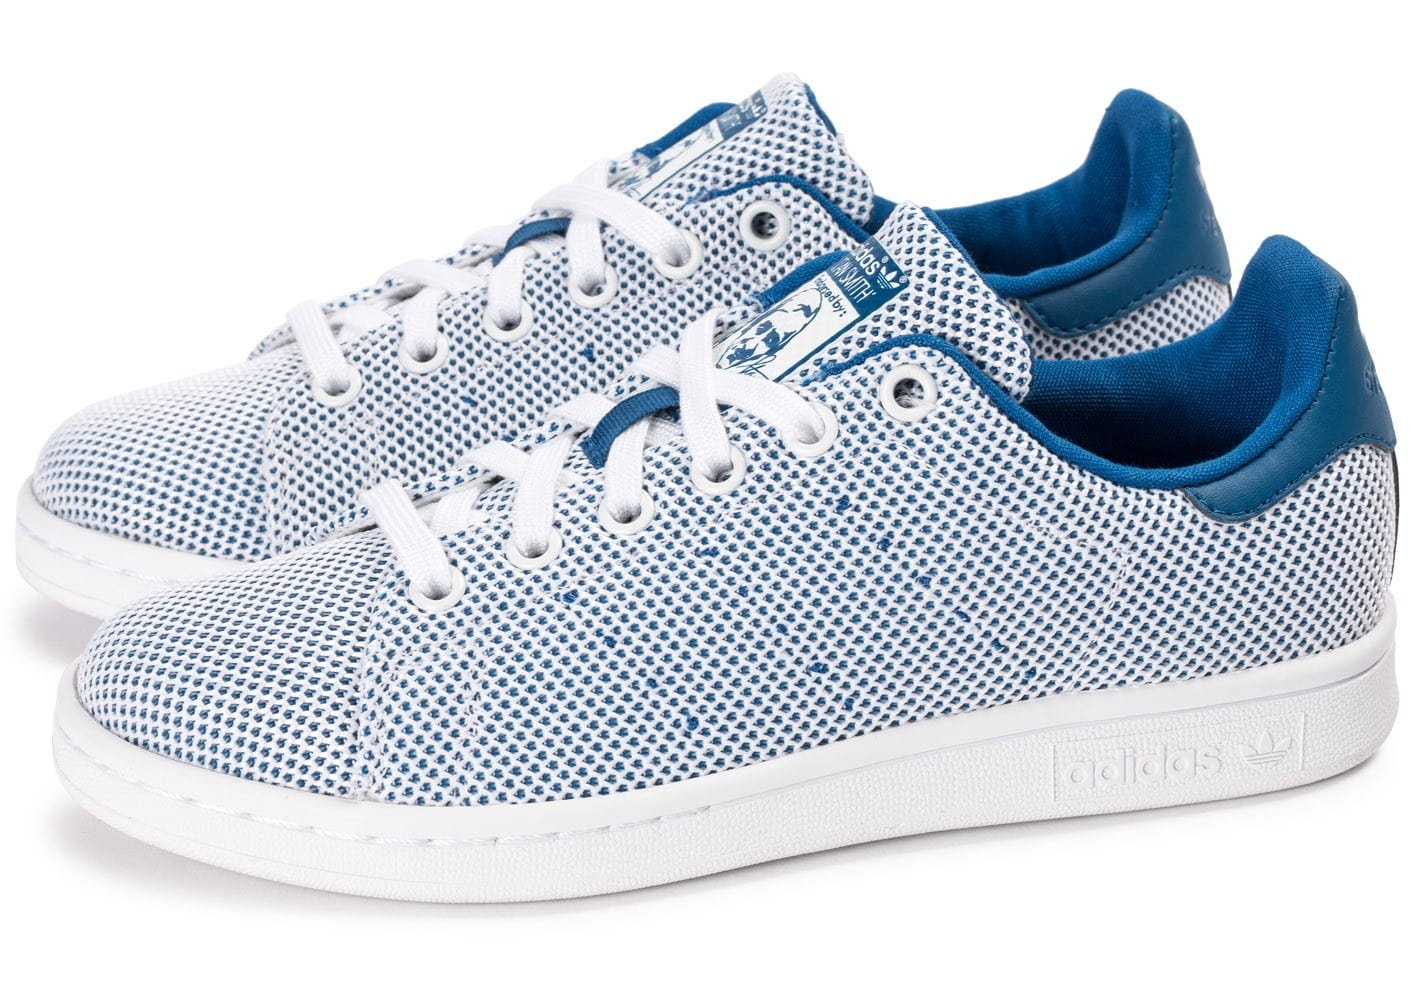 huge discount ffeac 5e572 adidas stan smith homme bleu,adidas Stan Smith Adicolor bleu Chaussures  Homme Chausport